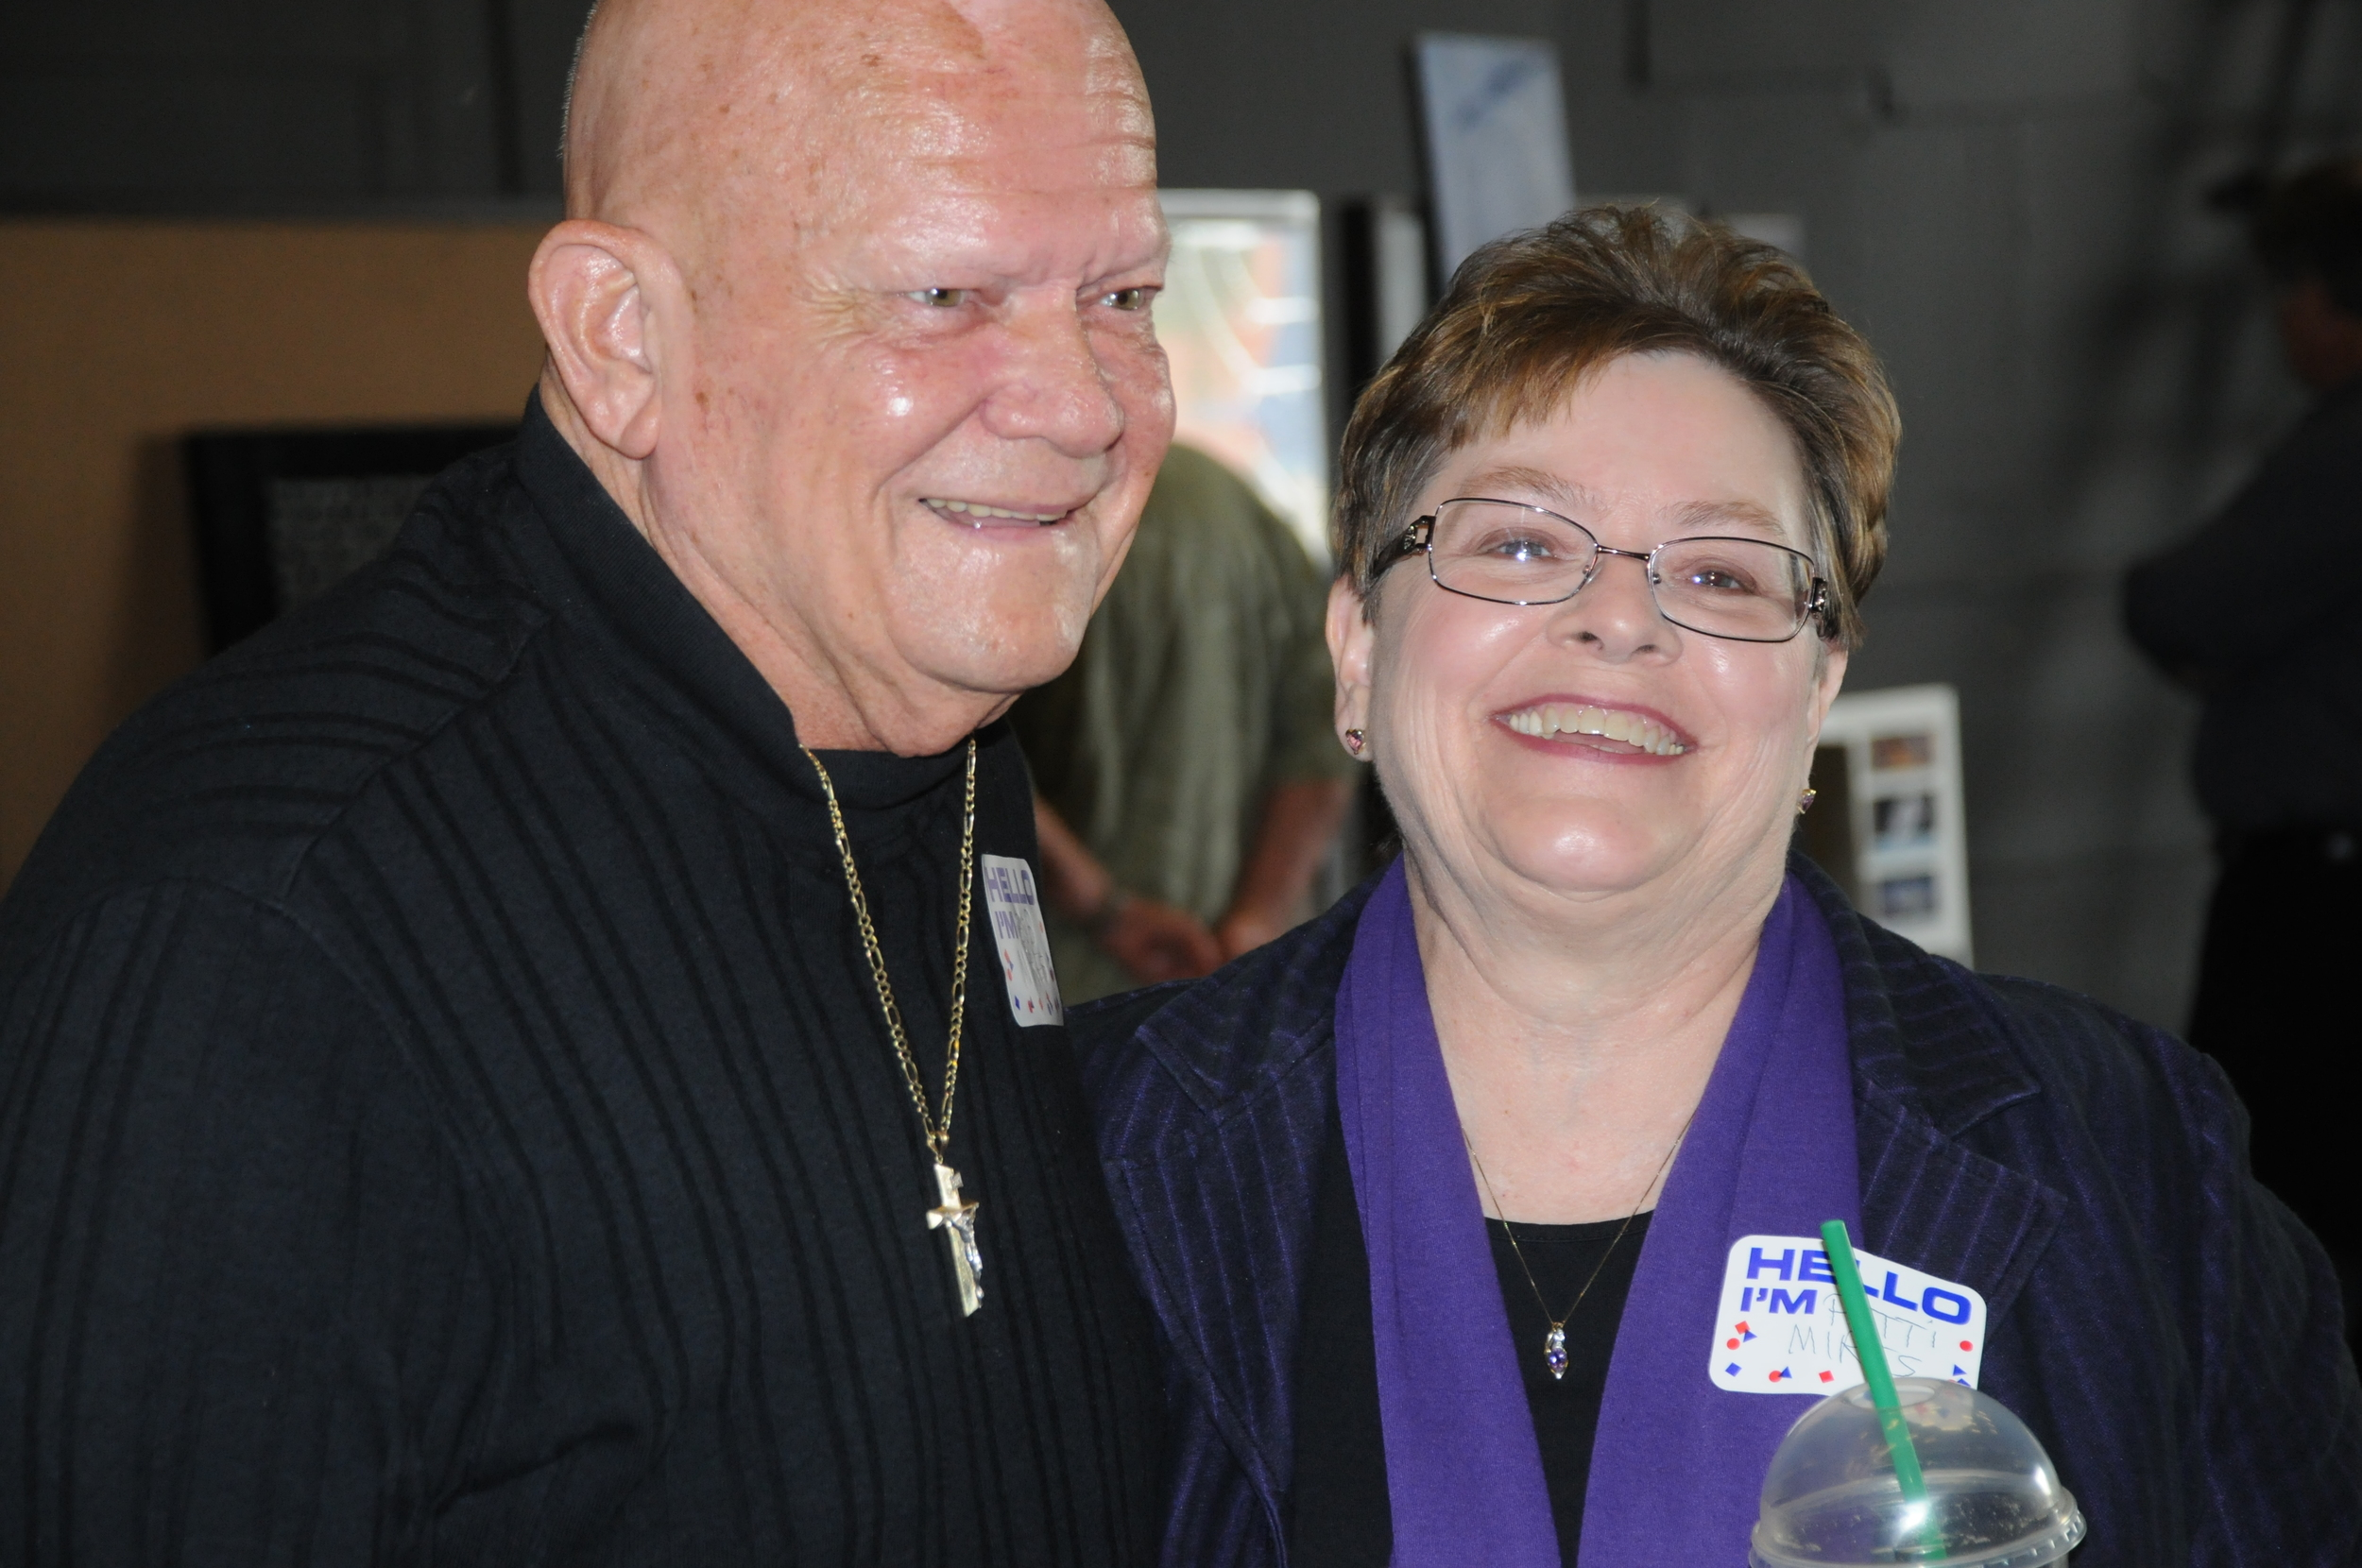 Mr. and Mrs. Bob Miers and his wife at Apollo 13 event